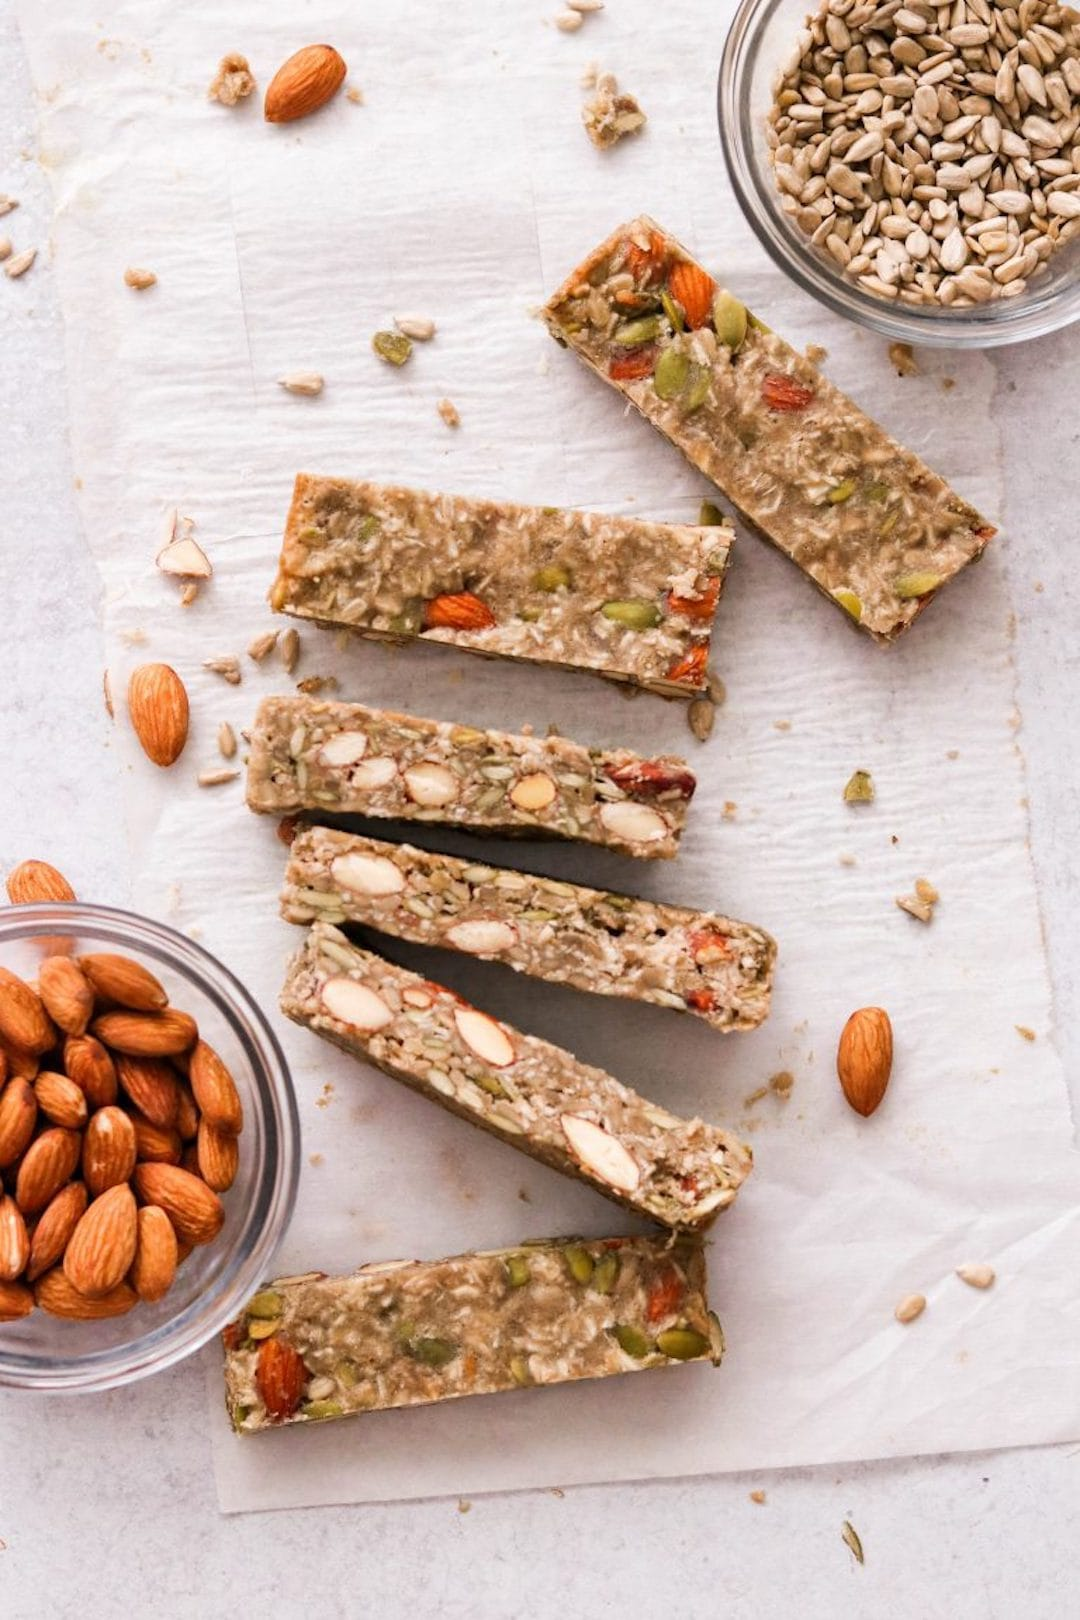 paleo protein bars on a tray with almonds